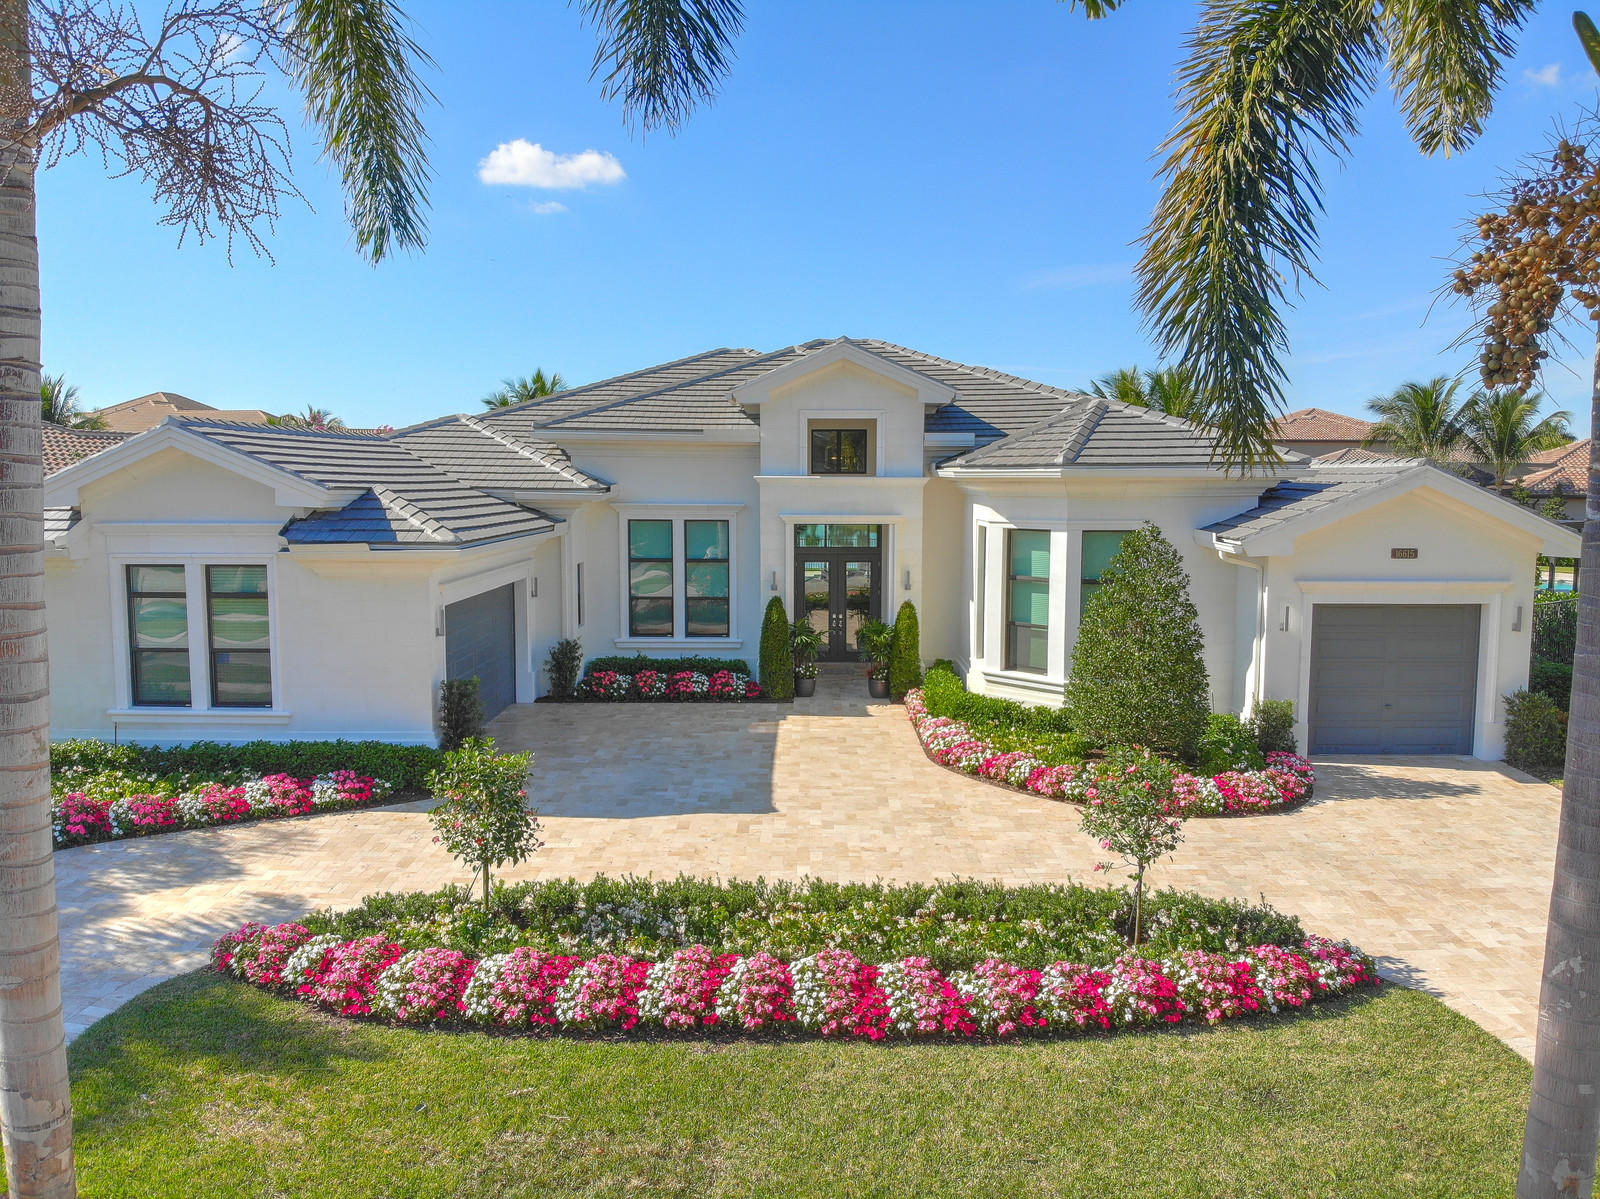 Located in the highly sought after gated community of Seven Bridges, this magnificent house offers 4 bedrooms + office + club room and 5 1/2 bathrooms. Arrive at the circular travertine driveway with vibrant flowers and lush landscaping. Enter into the foyer with high ceilings, leading you into the spacious formal living room. Floor to ceiling windows invite in an abundance of natural light, highlighting the onyx accent wall and built-in fireplace. Family room is open to the dining room, which features tray ceilings and plenty of seating for guests. The well-equipped kitchen includes top of the line stainless steel appliances, walk-in pantry, and custom cabinetry. Flowing seamlessly into the living room, the family room boasts an incredible view of the backyard, gorgeous wall covering, and easy access to patio. The office features custom-built contemporary shelving. Stunning master suite includes sitting area with fabulous lake views, custom California closets, and a spa-like bathroom with double sinks, frameless shower, and freestanding tub. Extra guest rooms all offer en-suite bathrooms. The stunning patio area is complete with a summer kitchen, heated pool, and covered/uncovered seating area. Additional features include a full house generator, motorized window treatments, and impact windows. Hurry in today for your private showing of this spectacular Belvedere model with long lake view!